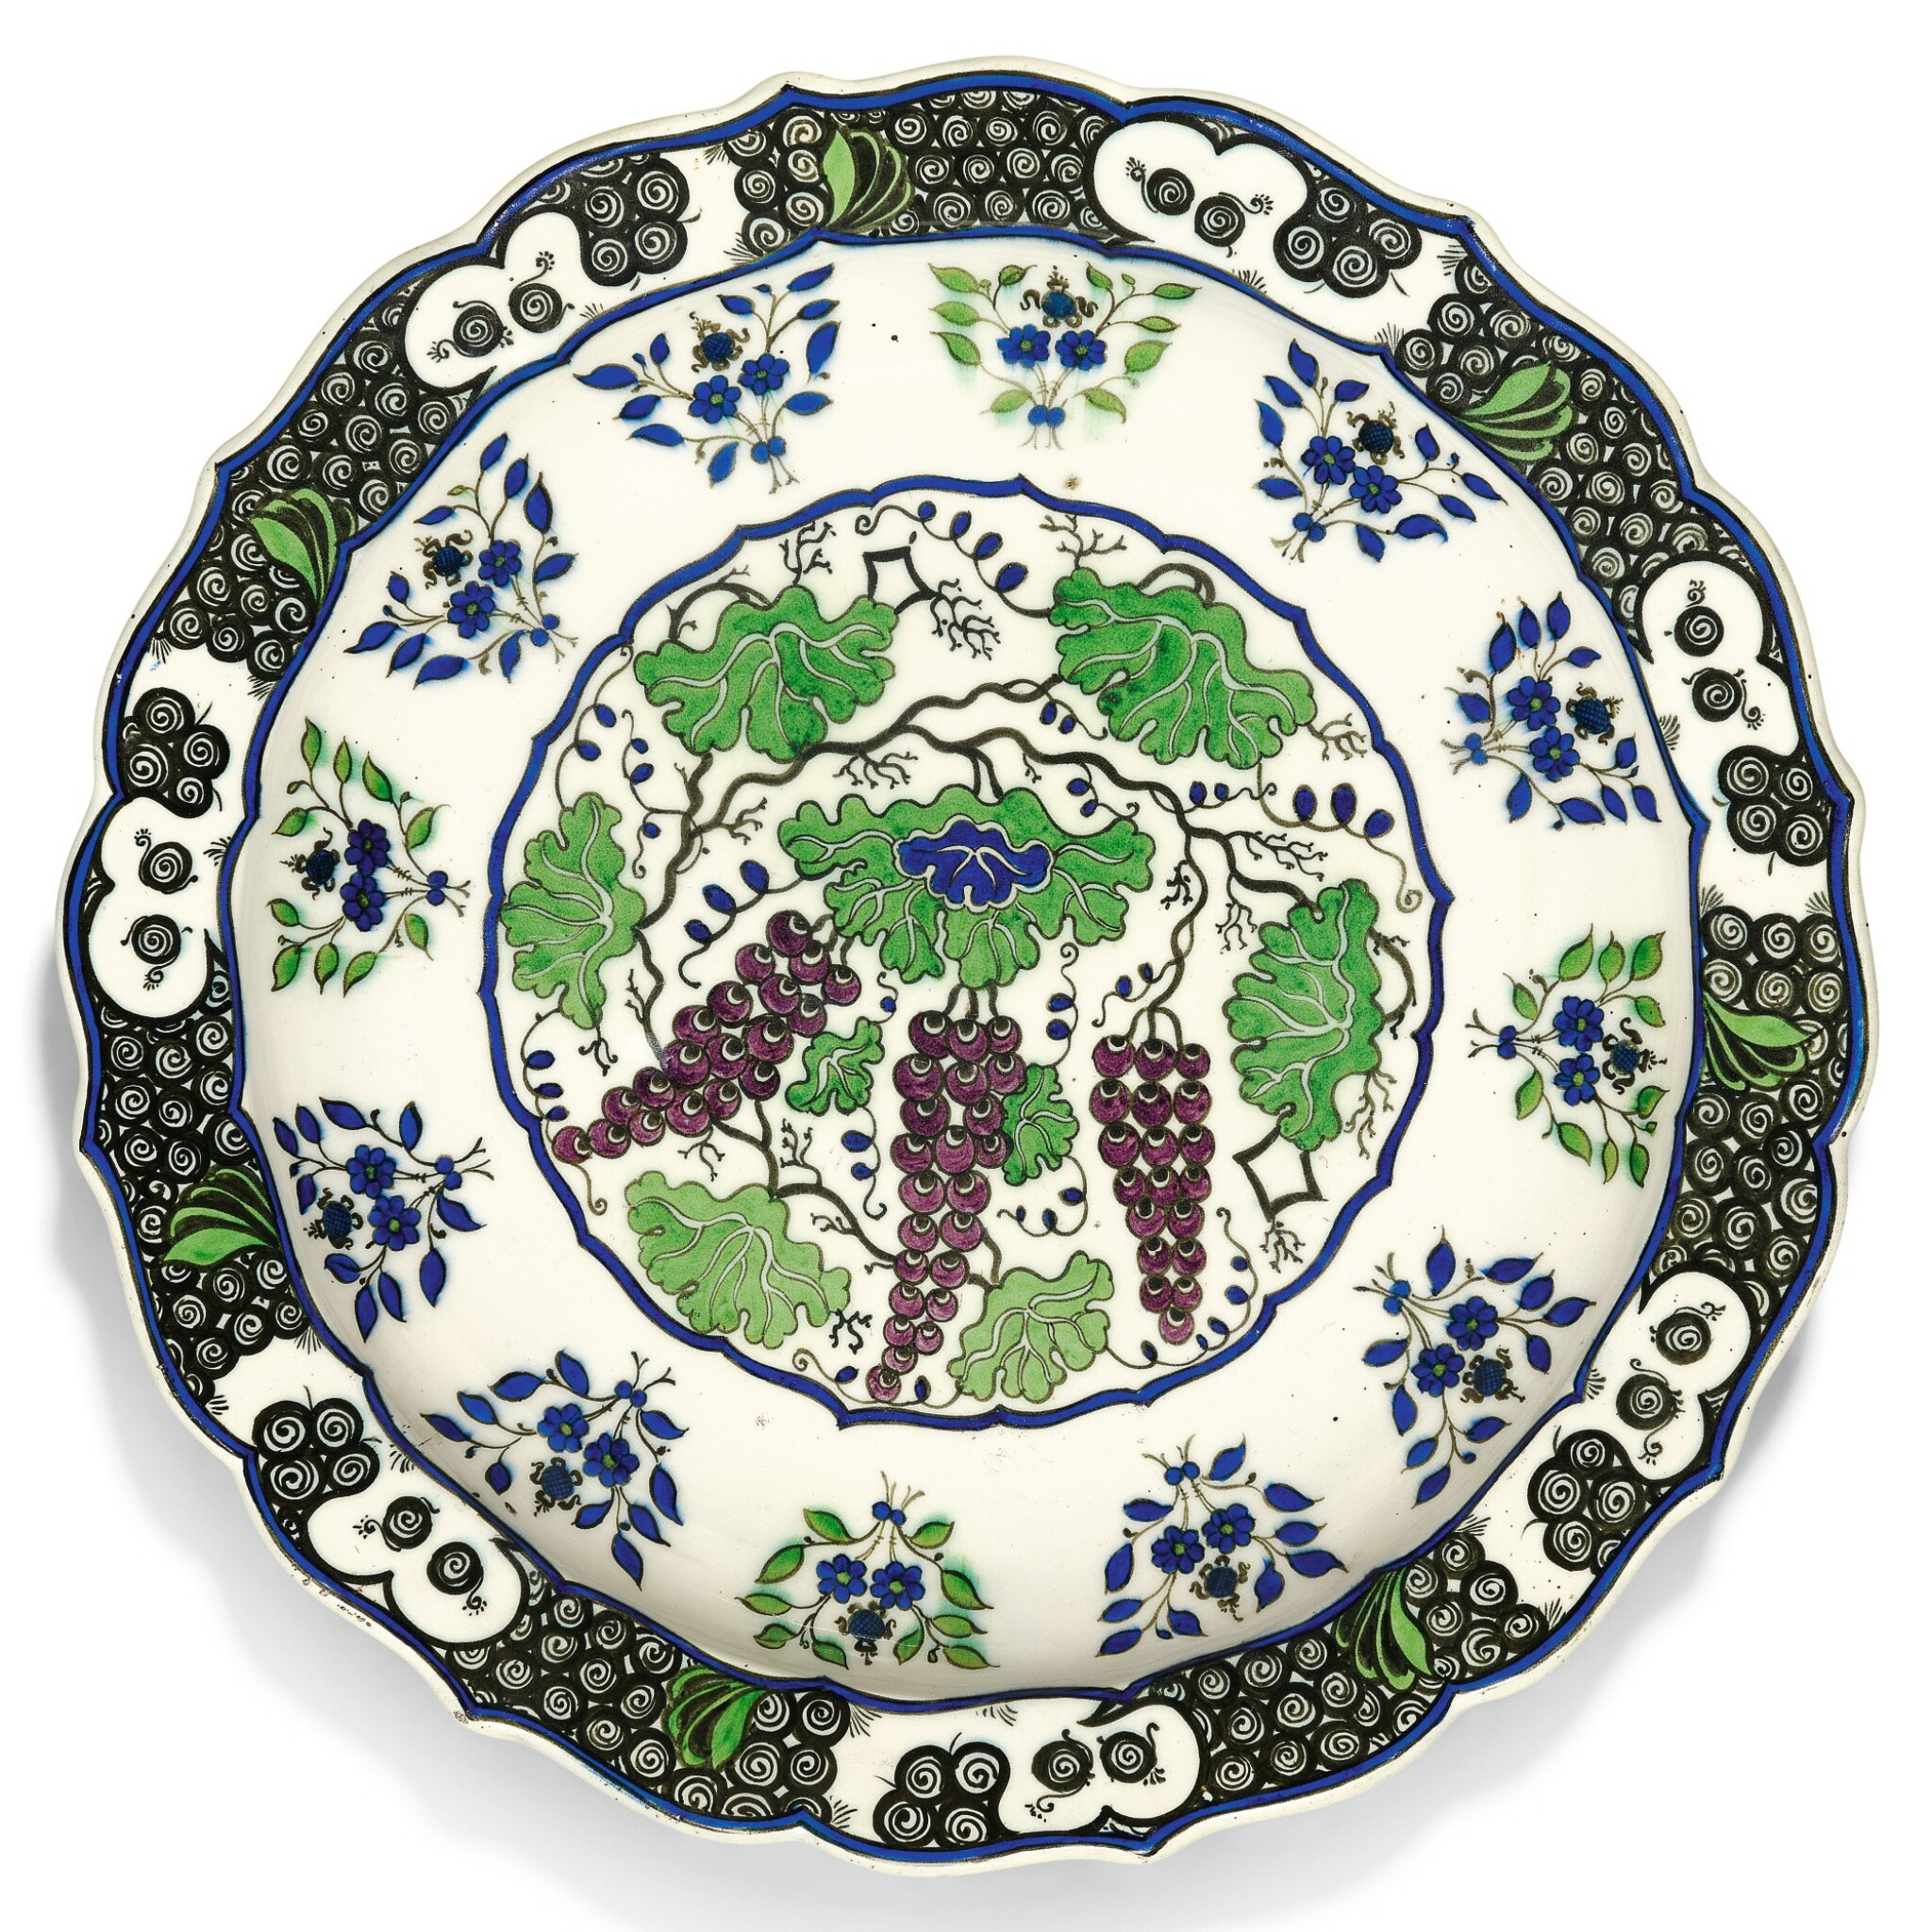 View full screen - View 1 of Lot 227. A LARGE THEODORE DECK IZNIK-STYLE POTTERY DISH WITH GRAPES, FRANCE, 19TH CENTURY.